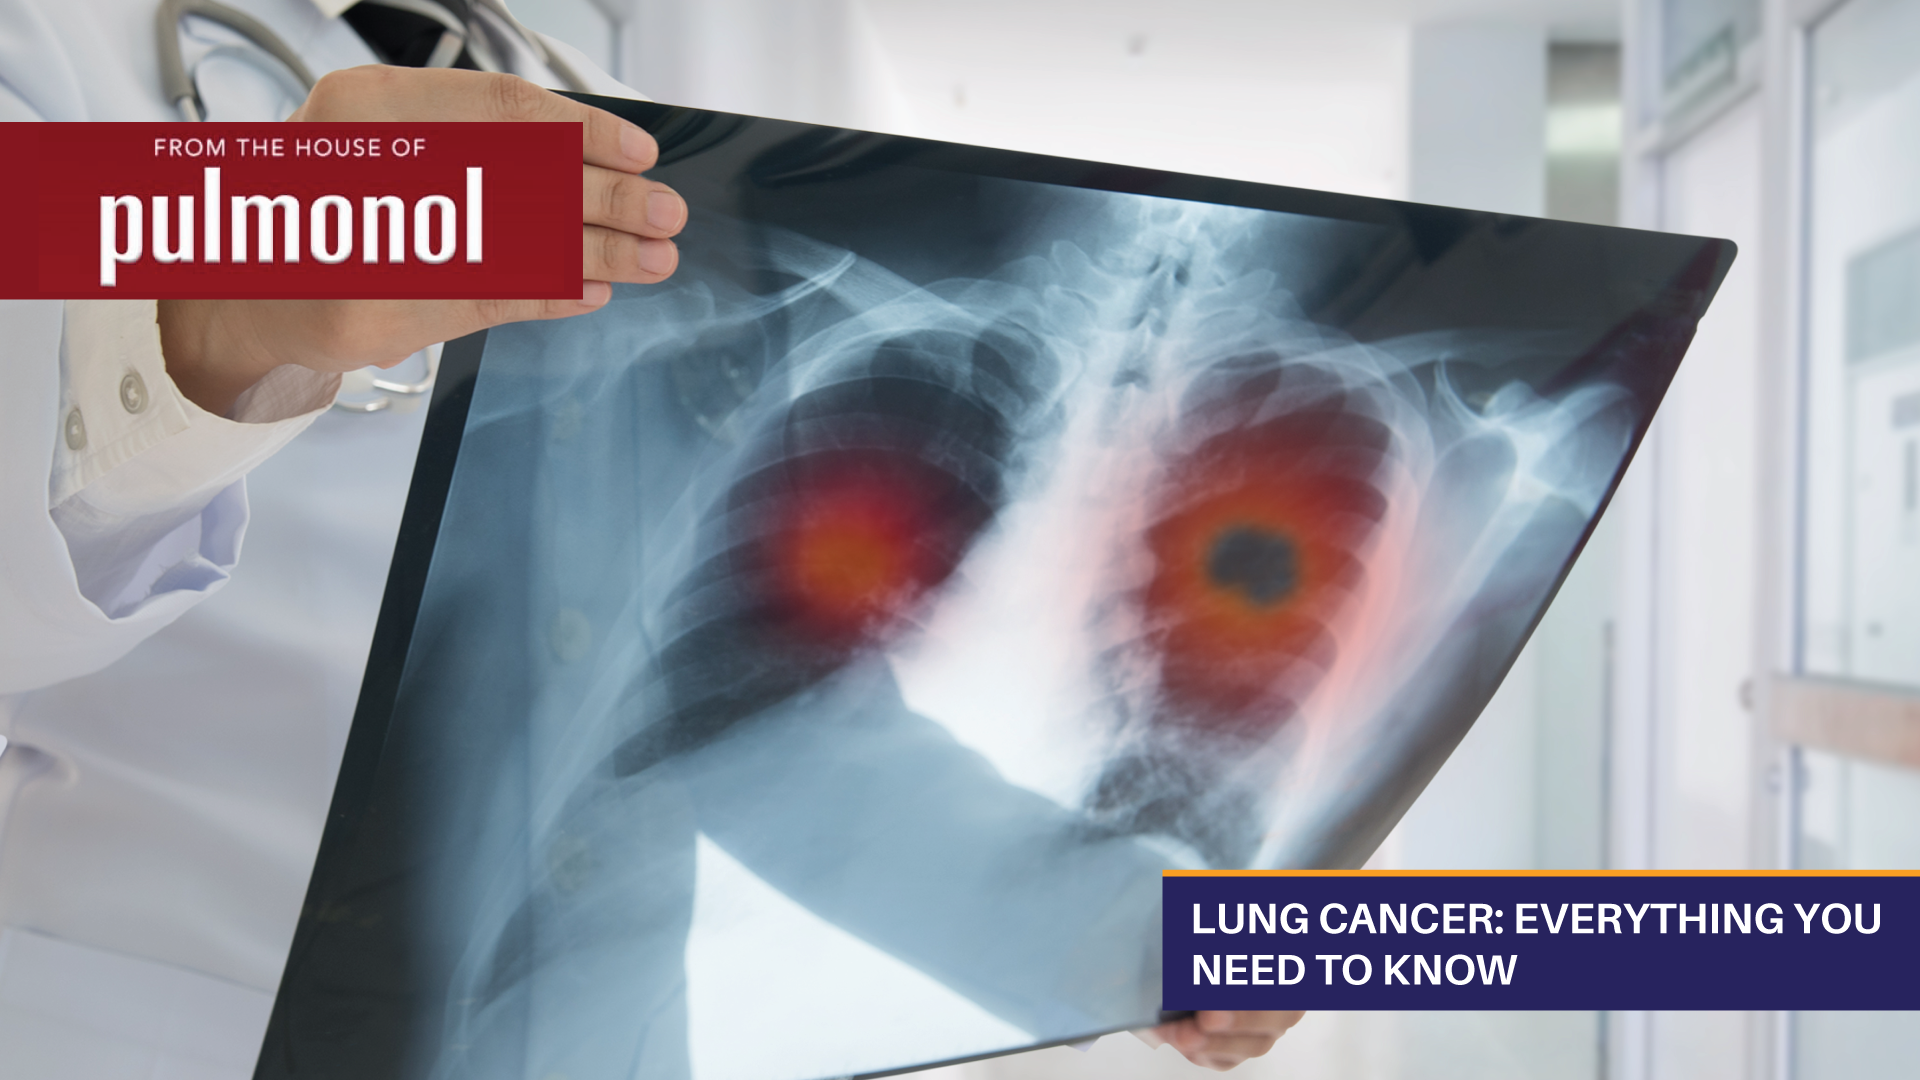 Lung Cancer: Everything You Need To Know